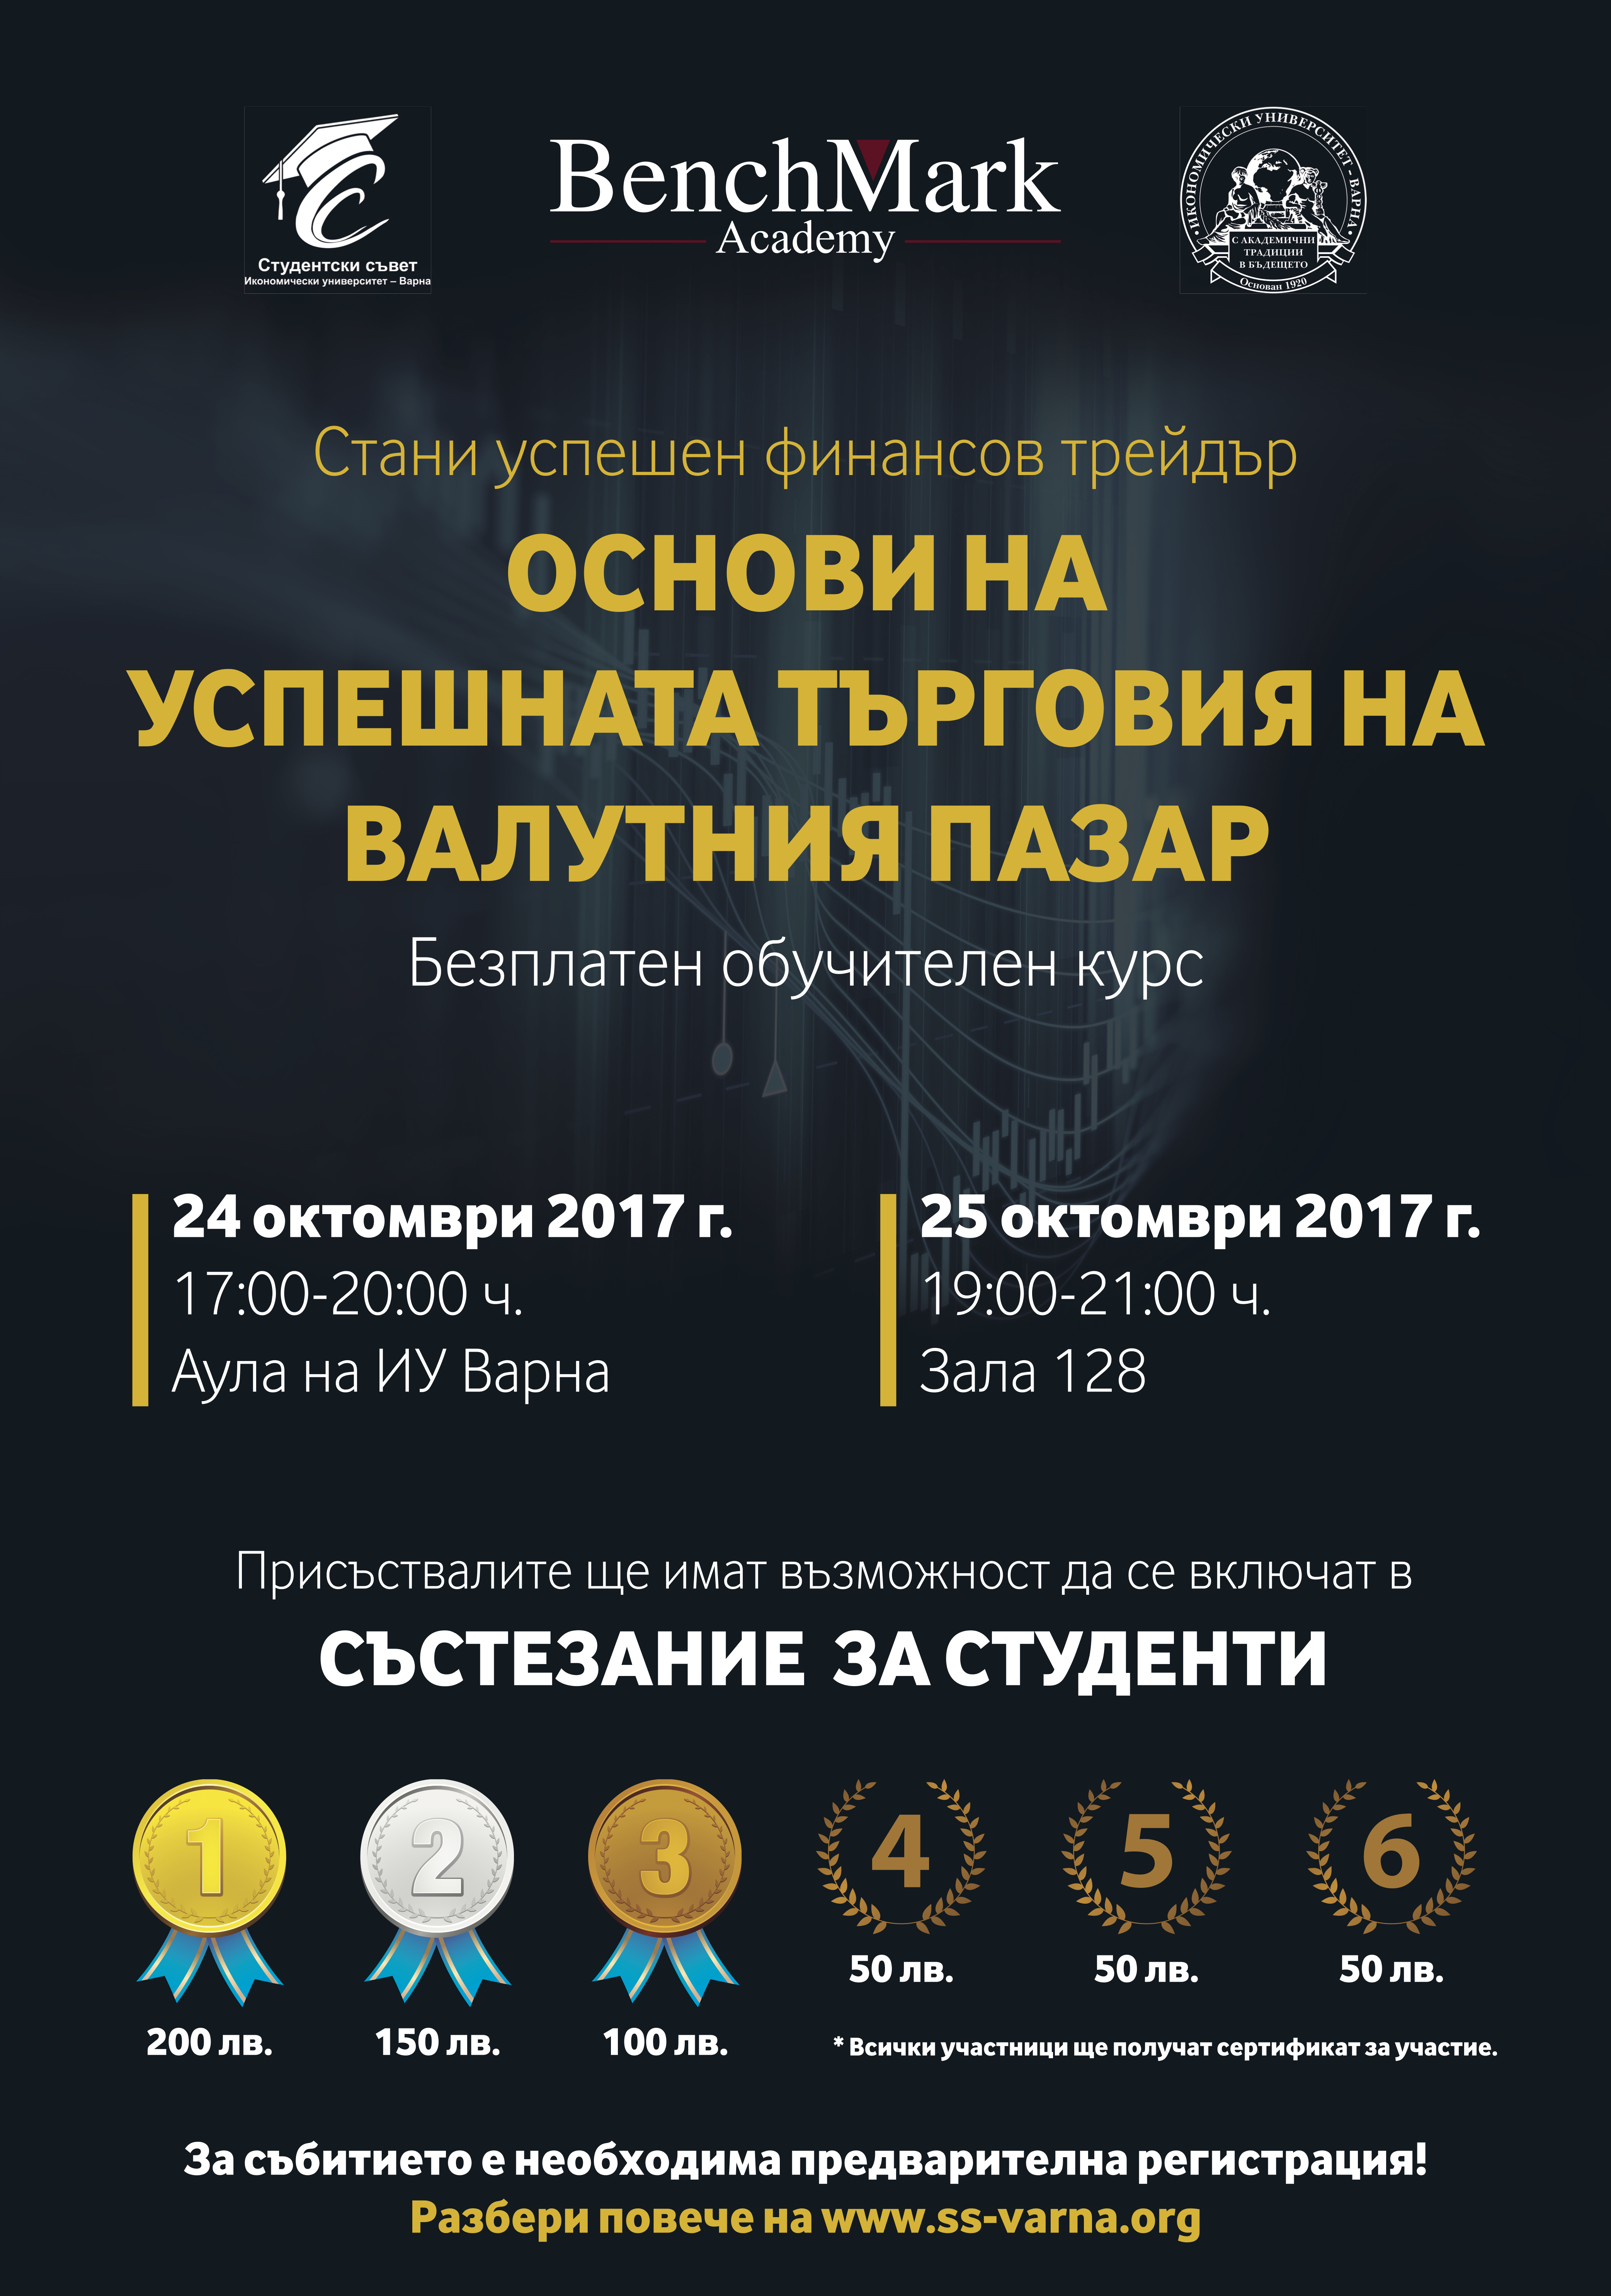 A free training course and competition in the financial markets are organized at the University of Economics - Varna